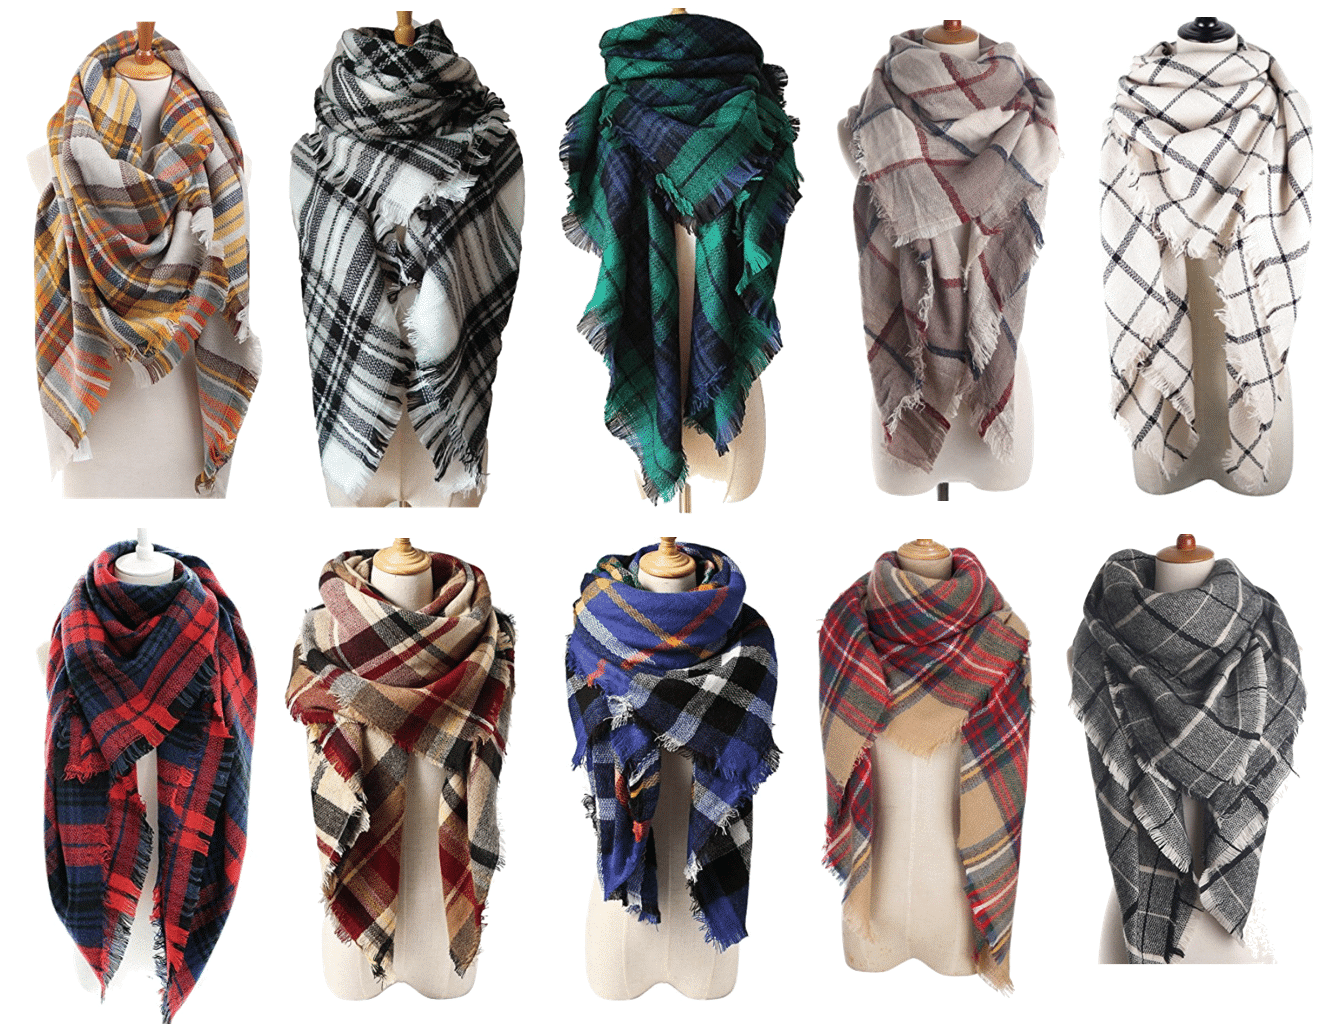 Affordable Blanket Scarves